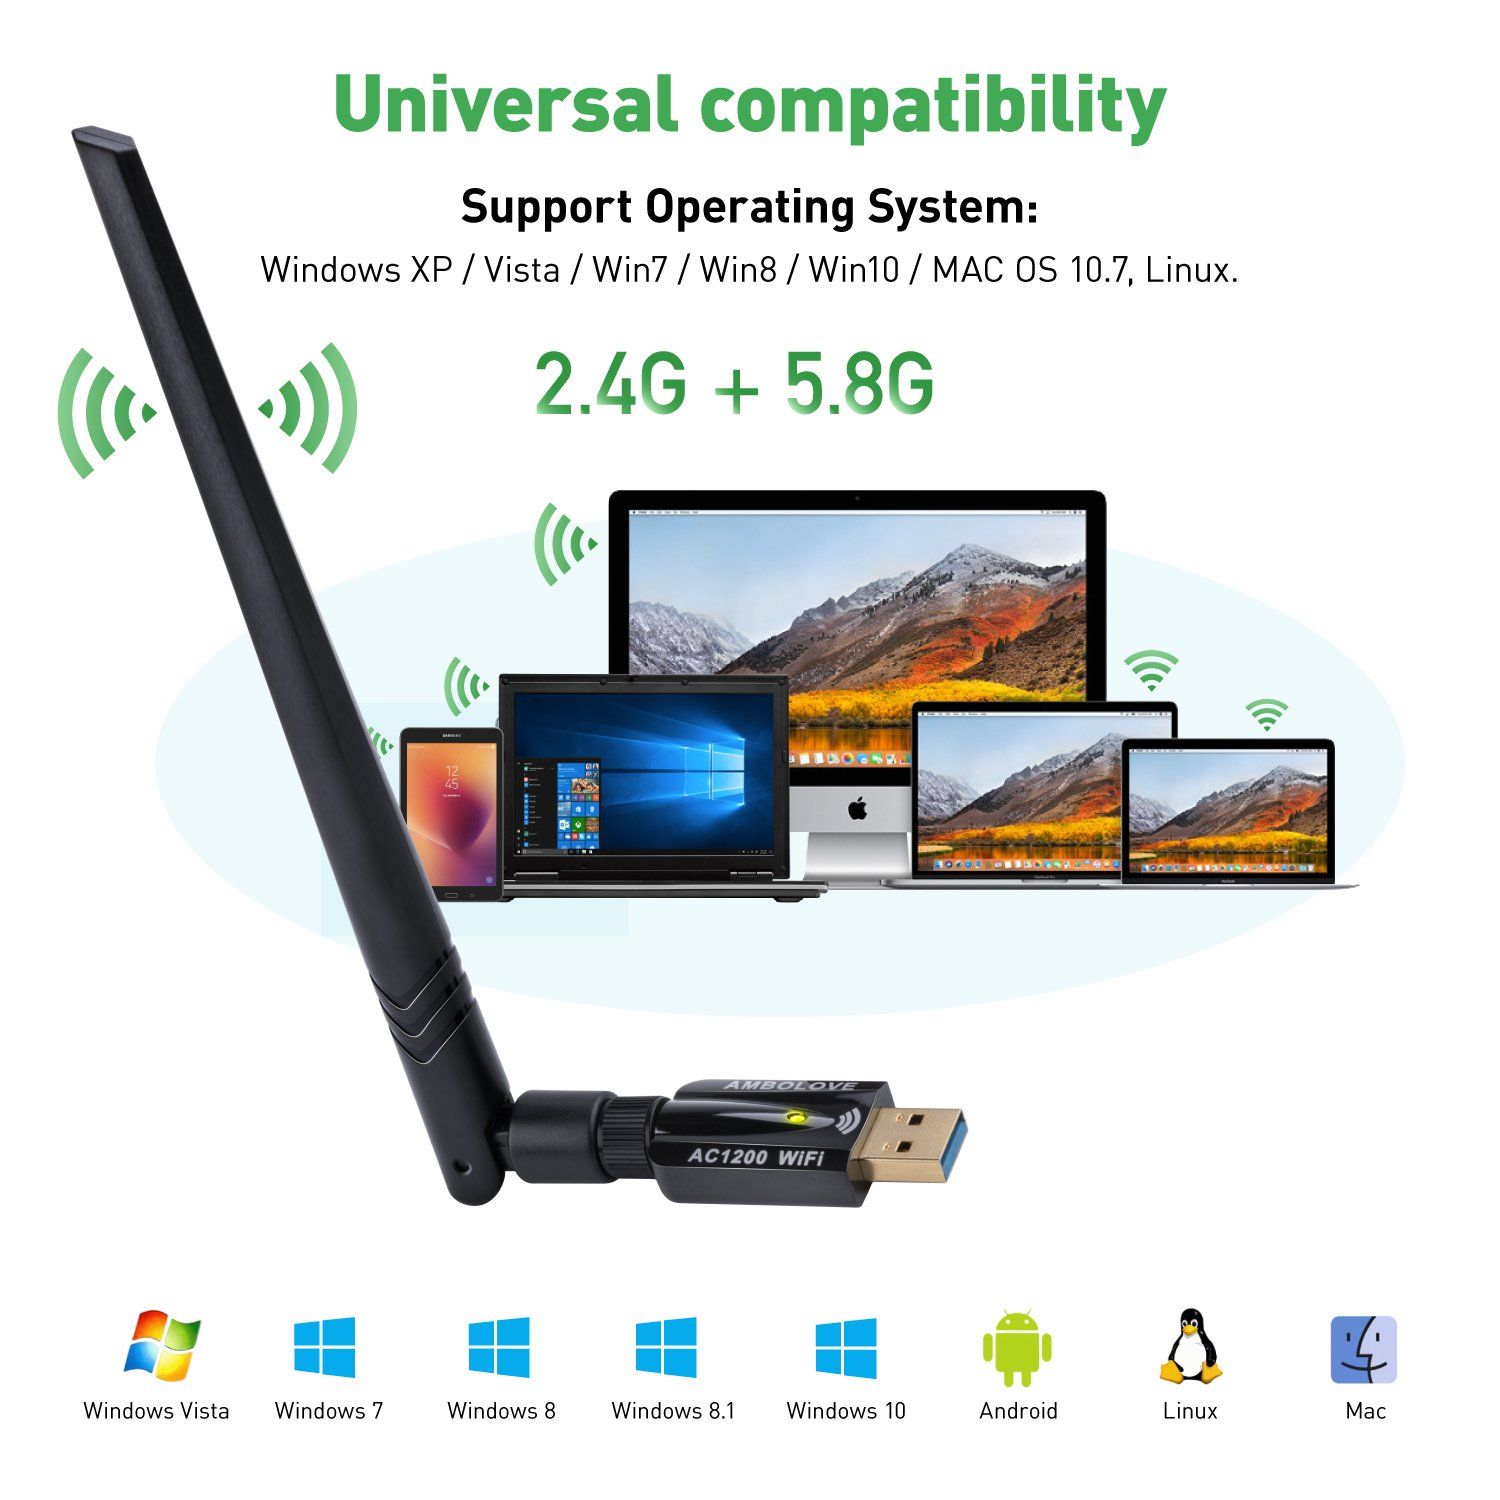 Amazon.com: AMBOLOVE USB WiFi Adapter, 1200Mbps USB Wireless Network Adapter WiFi Dongle/Antenna, Wireless USB WiFi Adapter for PC/Desktop/Laptop Support ...